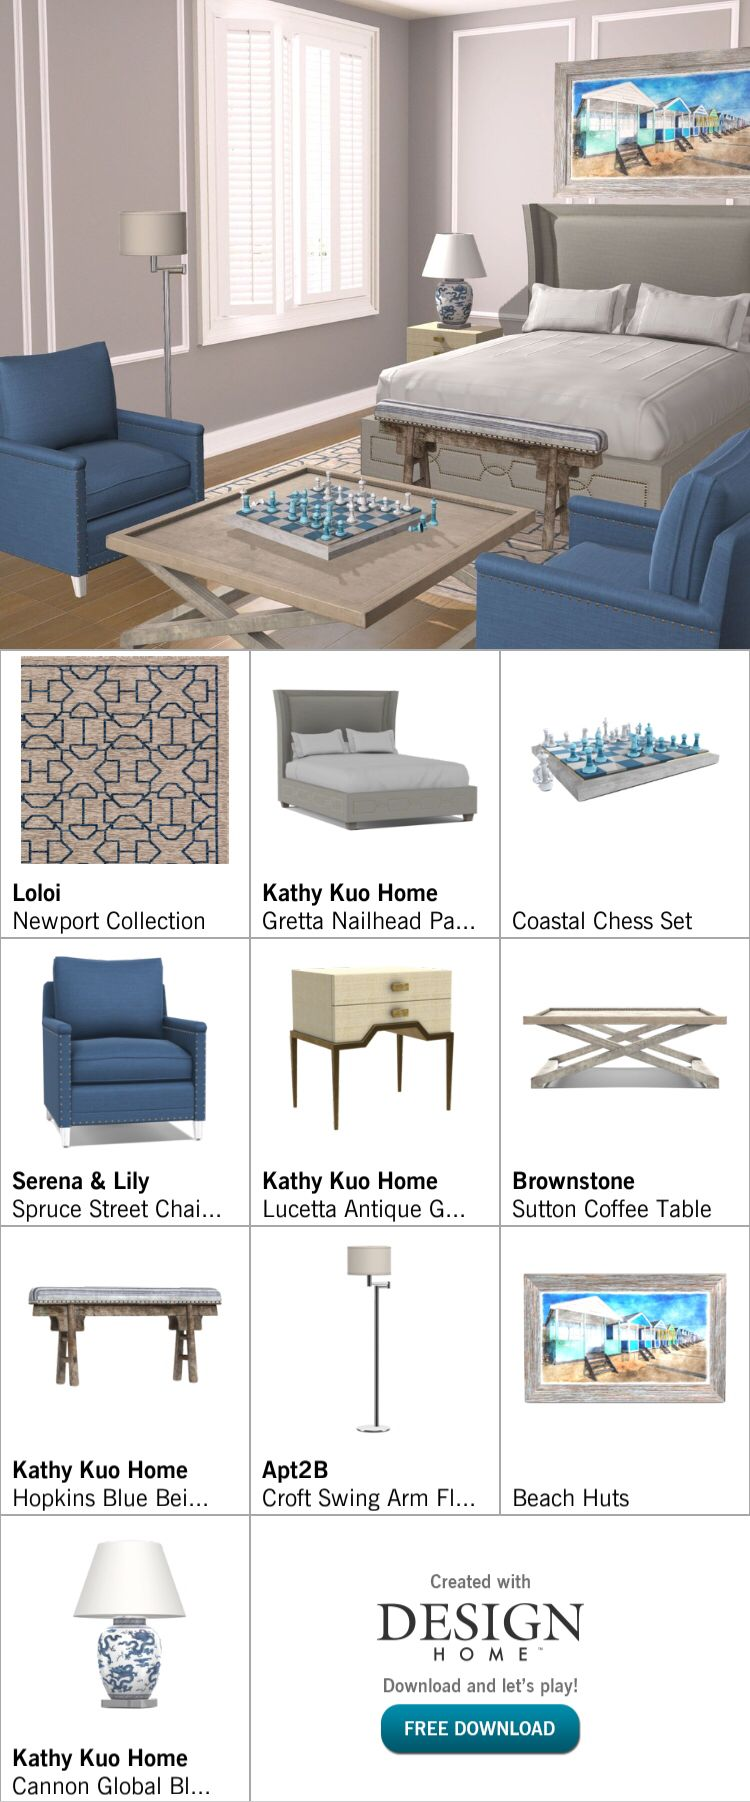 Created with design home cabinet interior house game furniture also rh za pinterest